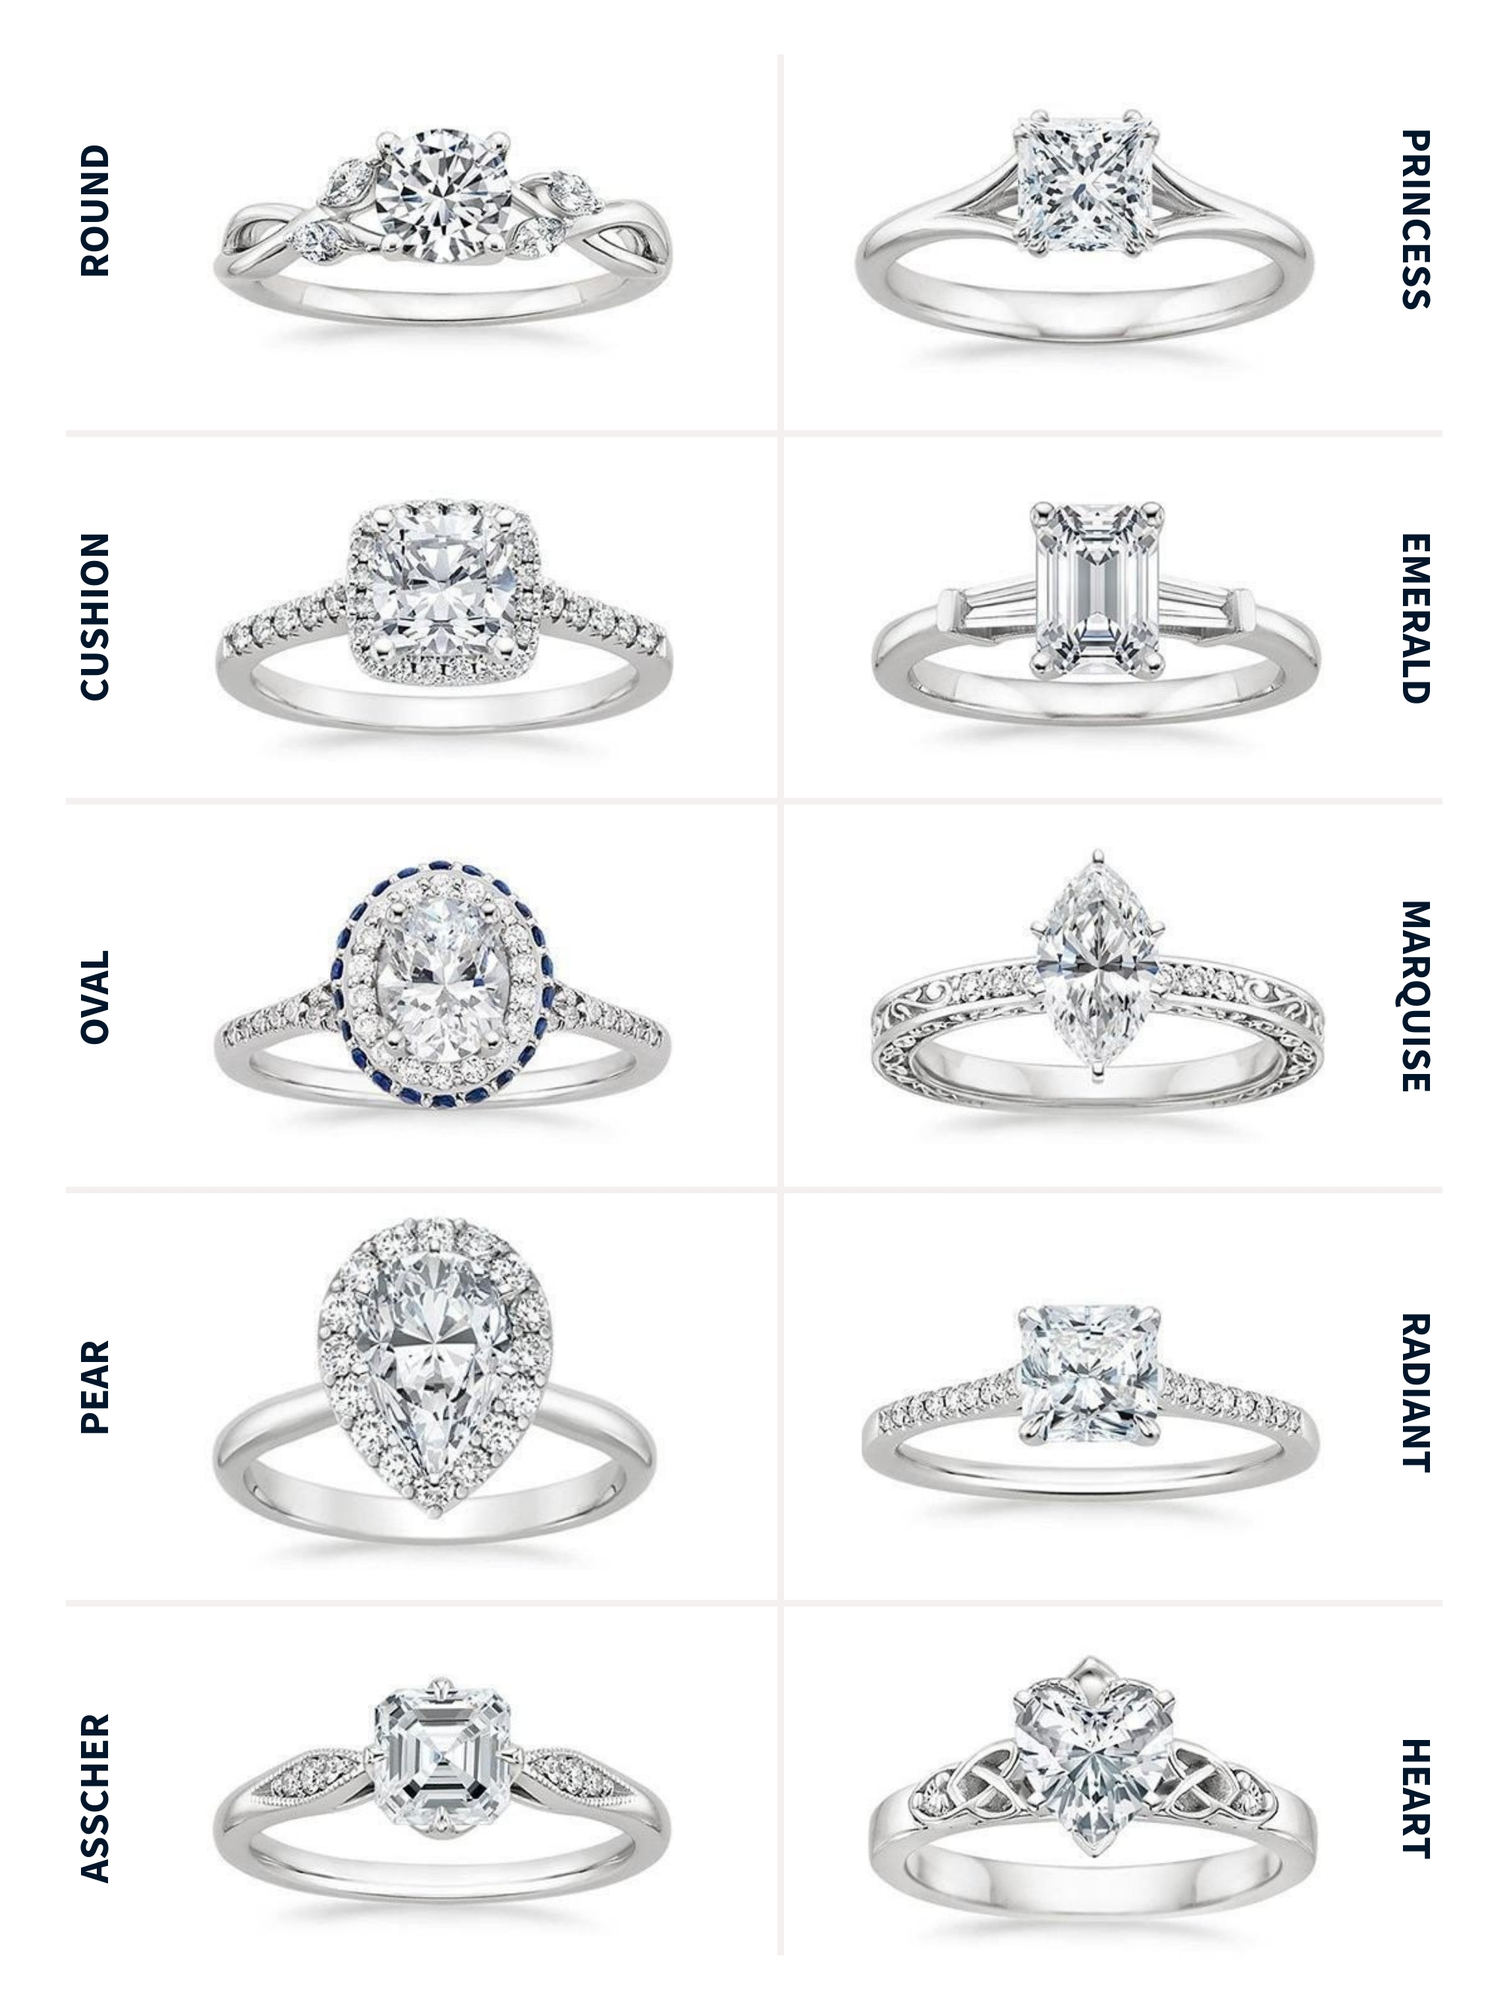 How To Buy An Engagement Ring In 2020 In Depth Guide